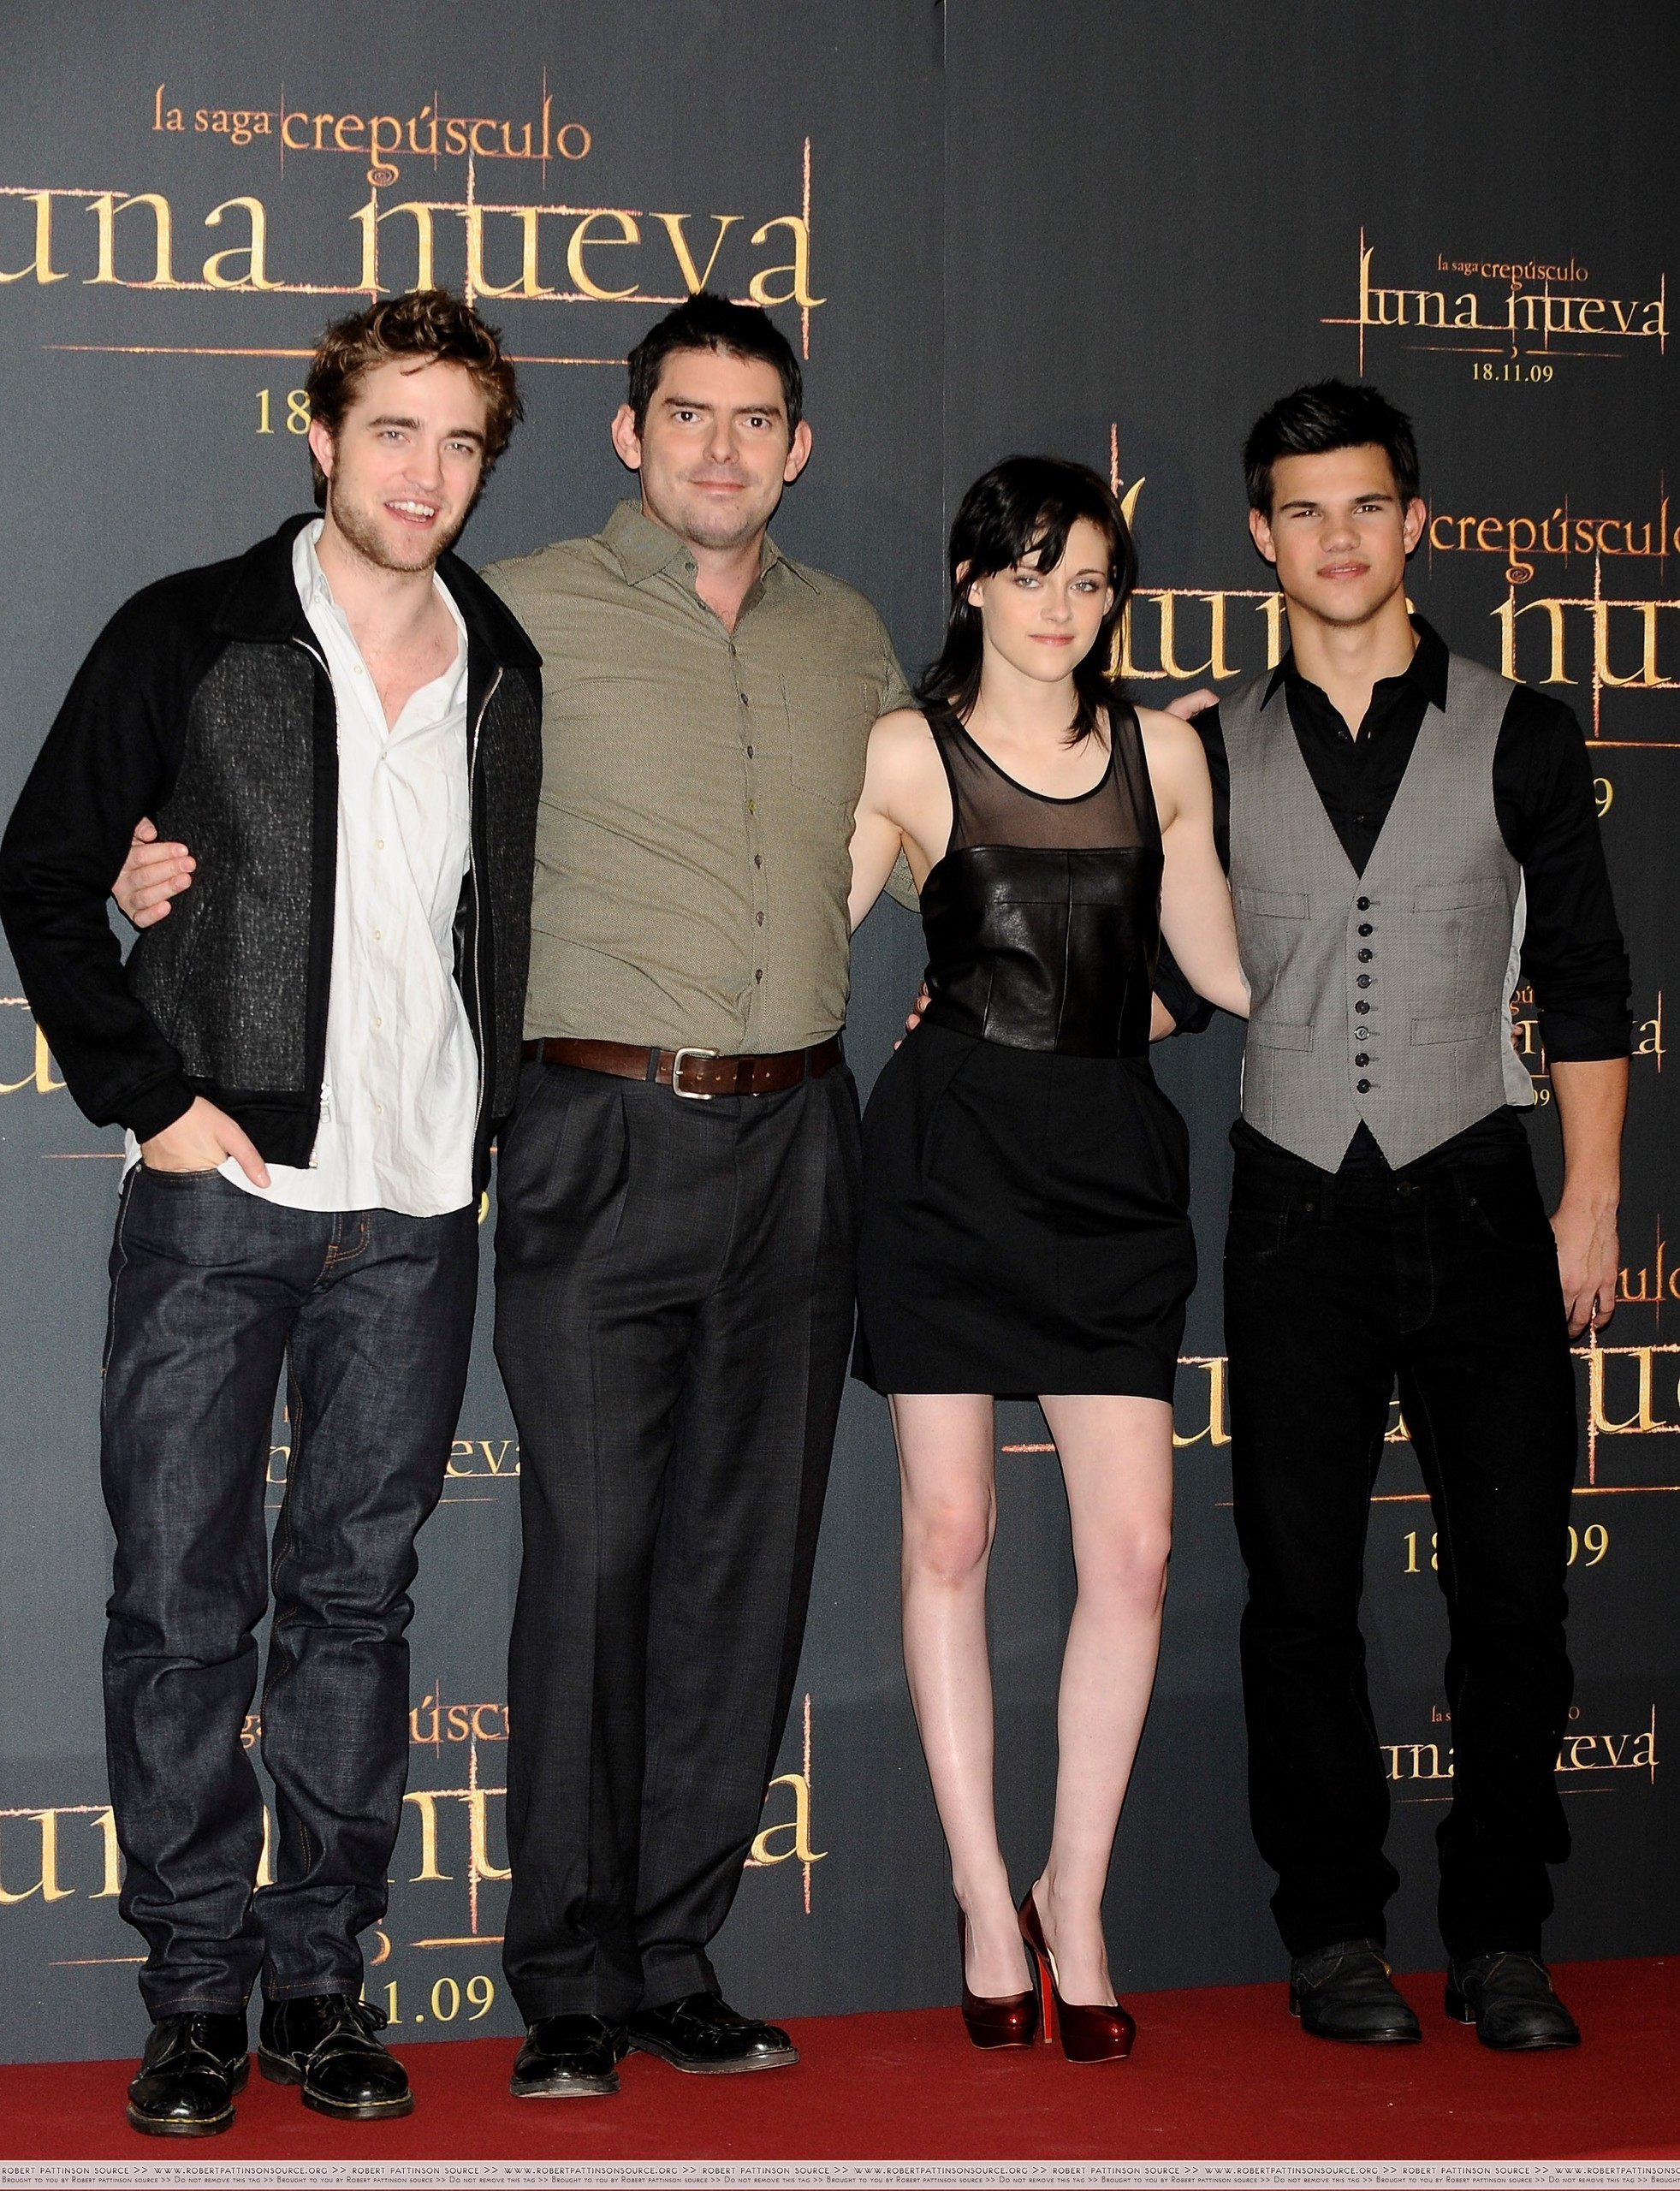 http://images2.fanpop.com/image/photos/9000000/First-pics-from-the-Madrid-Press-Conference-twilight-series-9023996-1963-2560.jpg